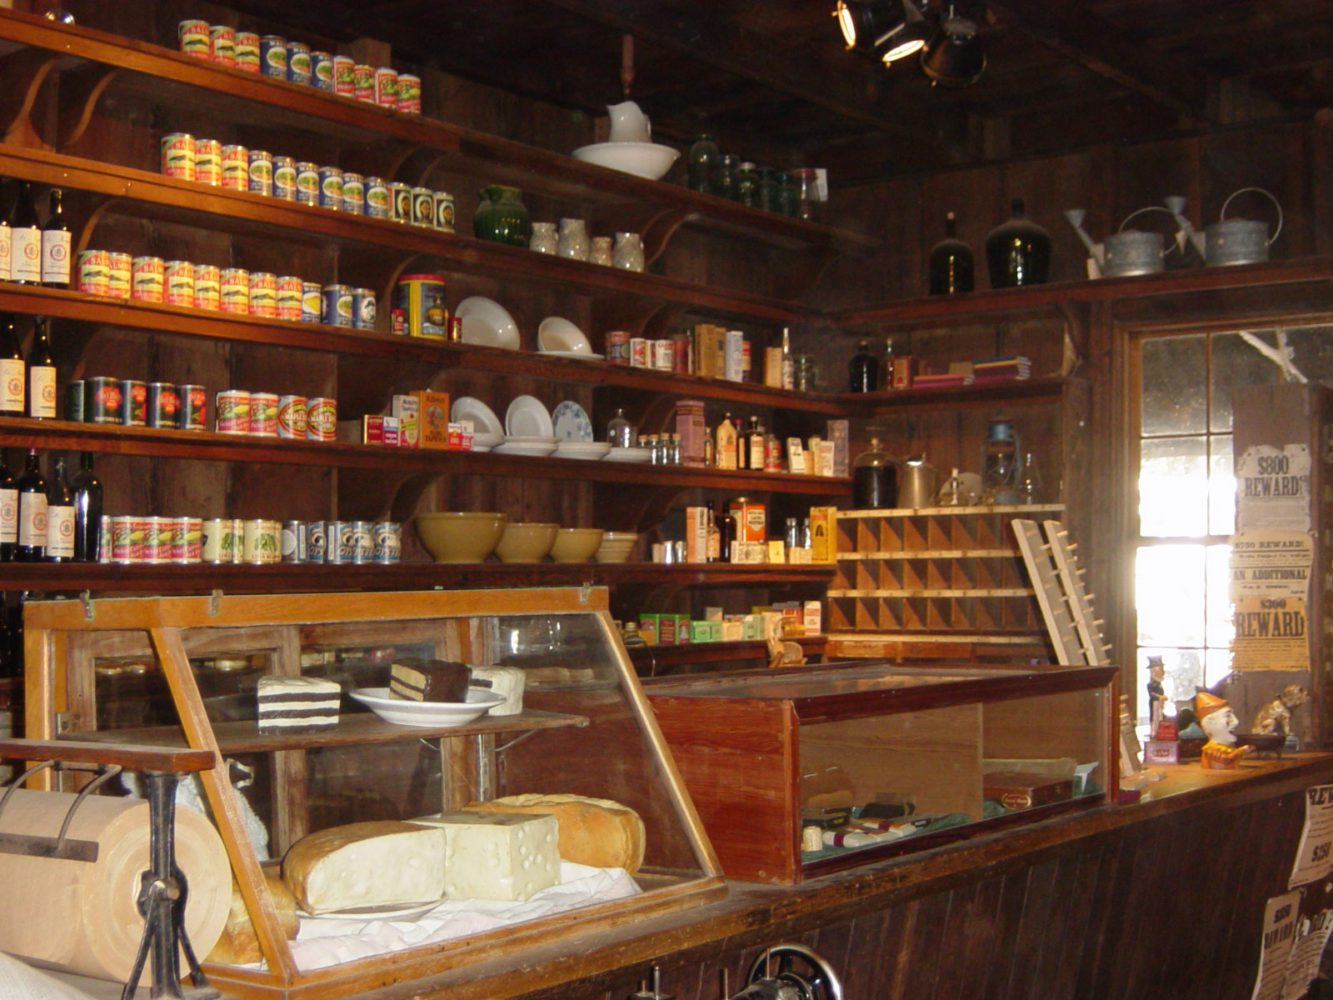 Counter with canned goods displayed at the Woodside Store